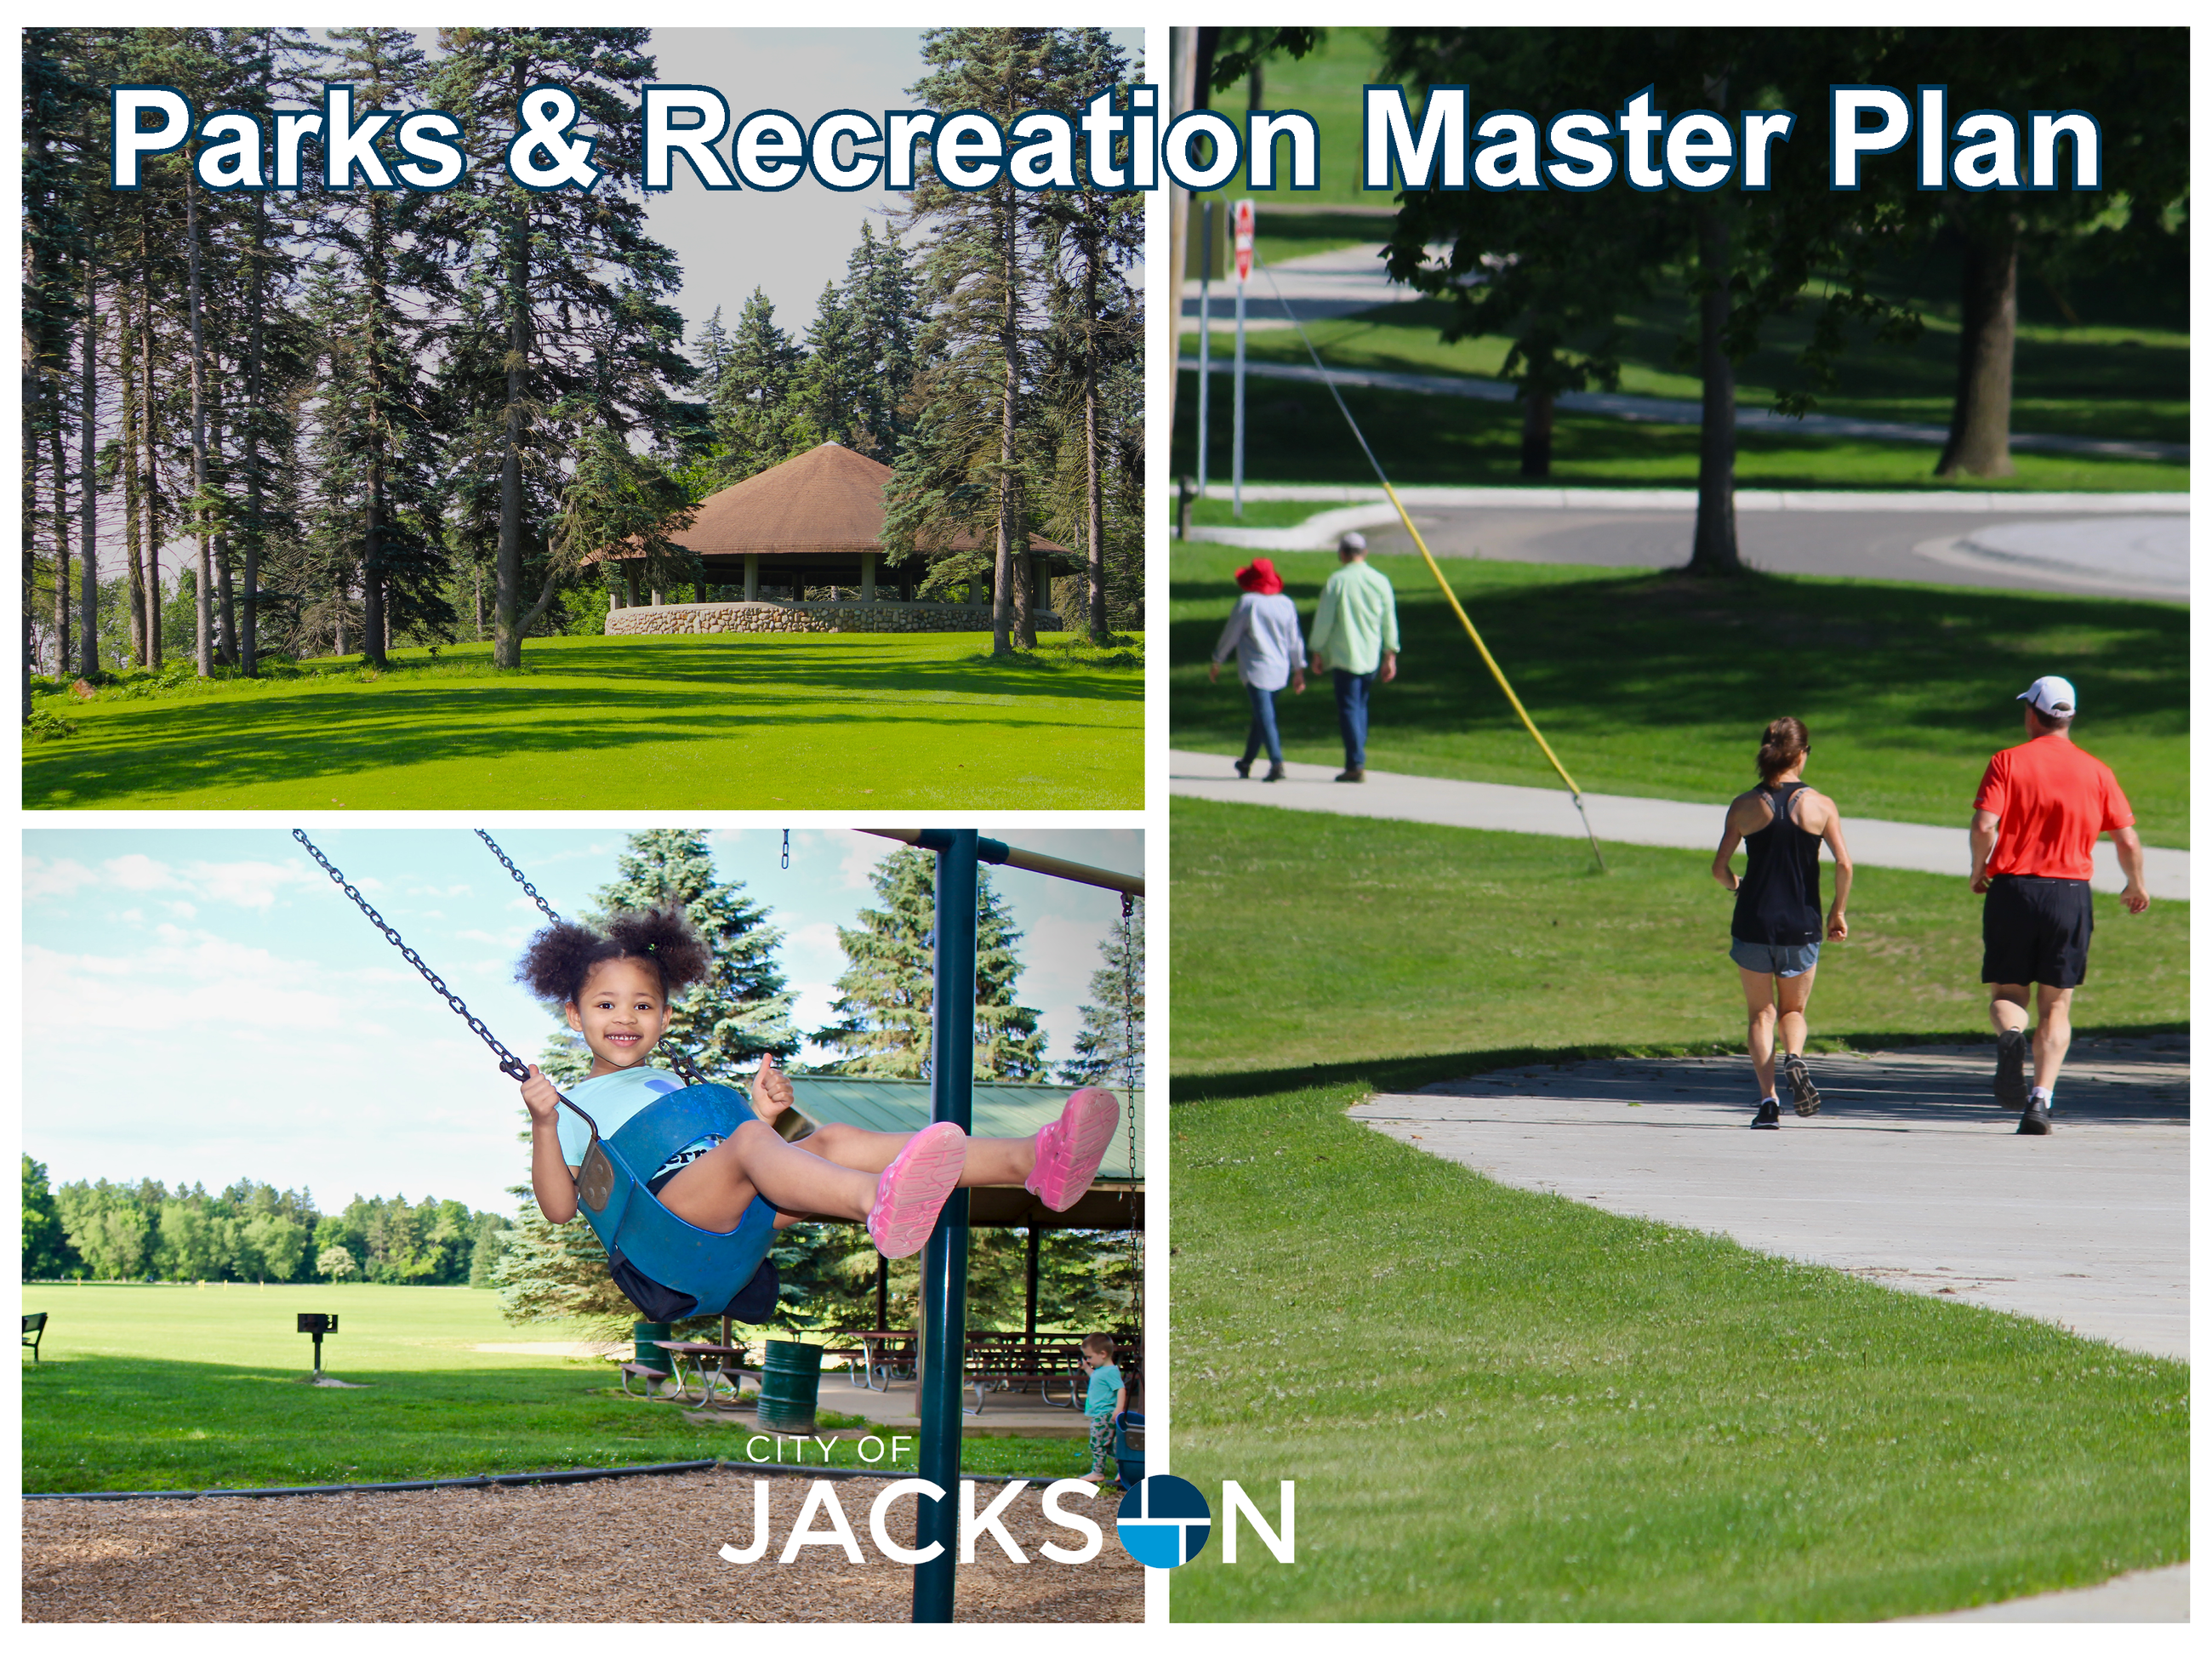 Three photos stitched together in one photo of parks and recreation activities. The Sharp Park rotun